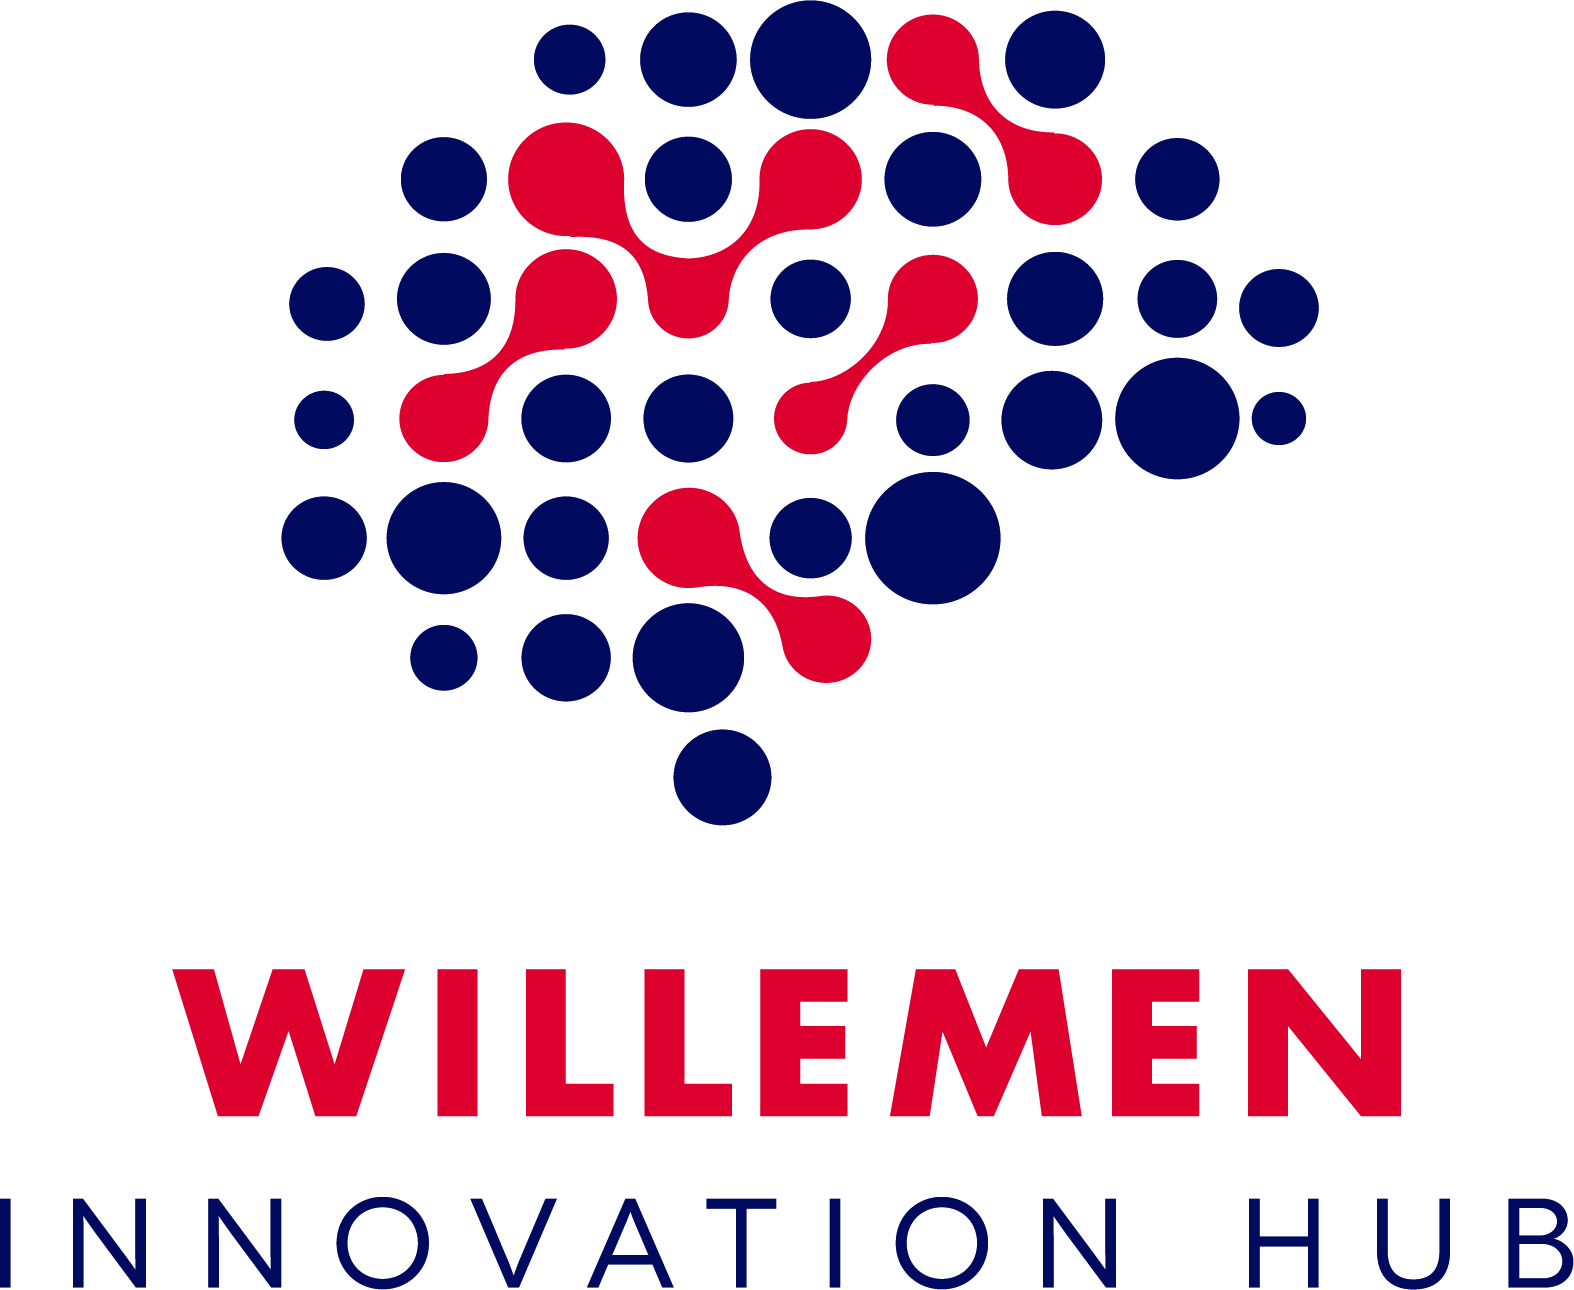 WILLEMEN INNOVATION HUB